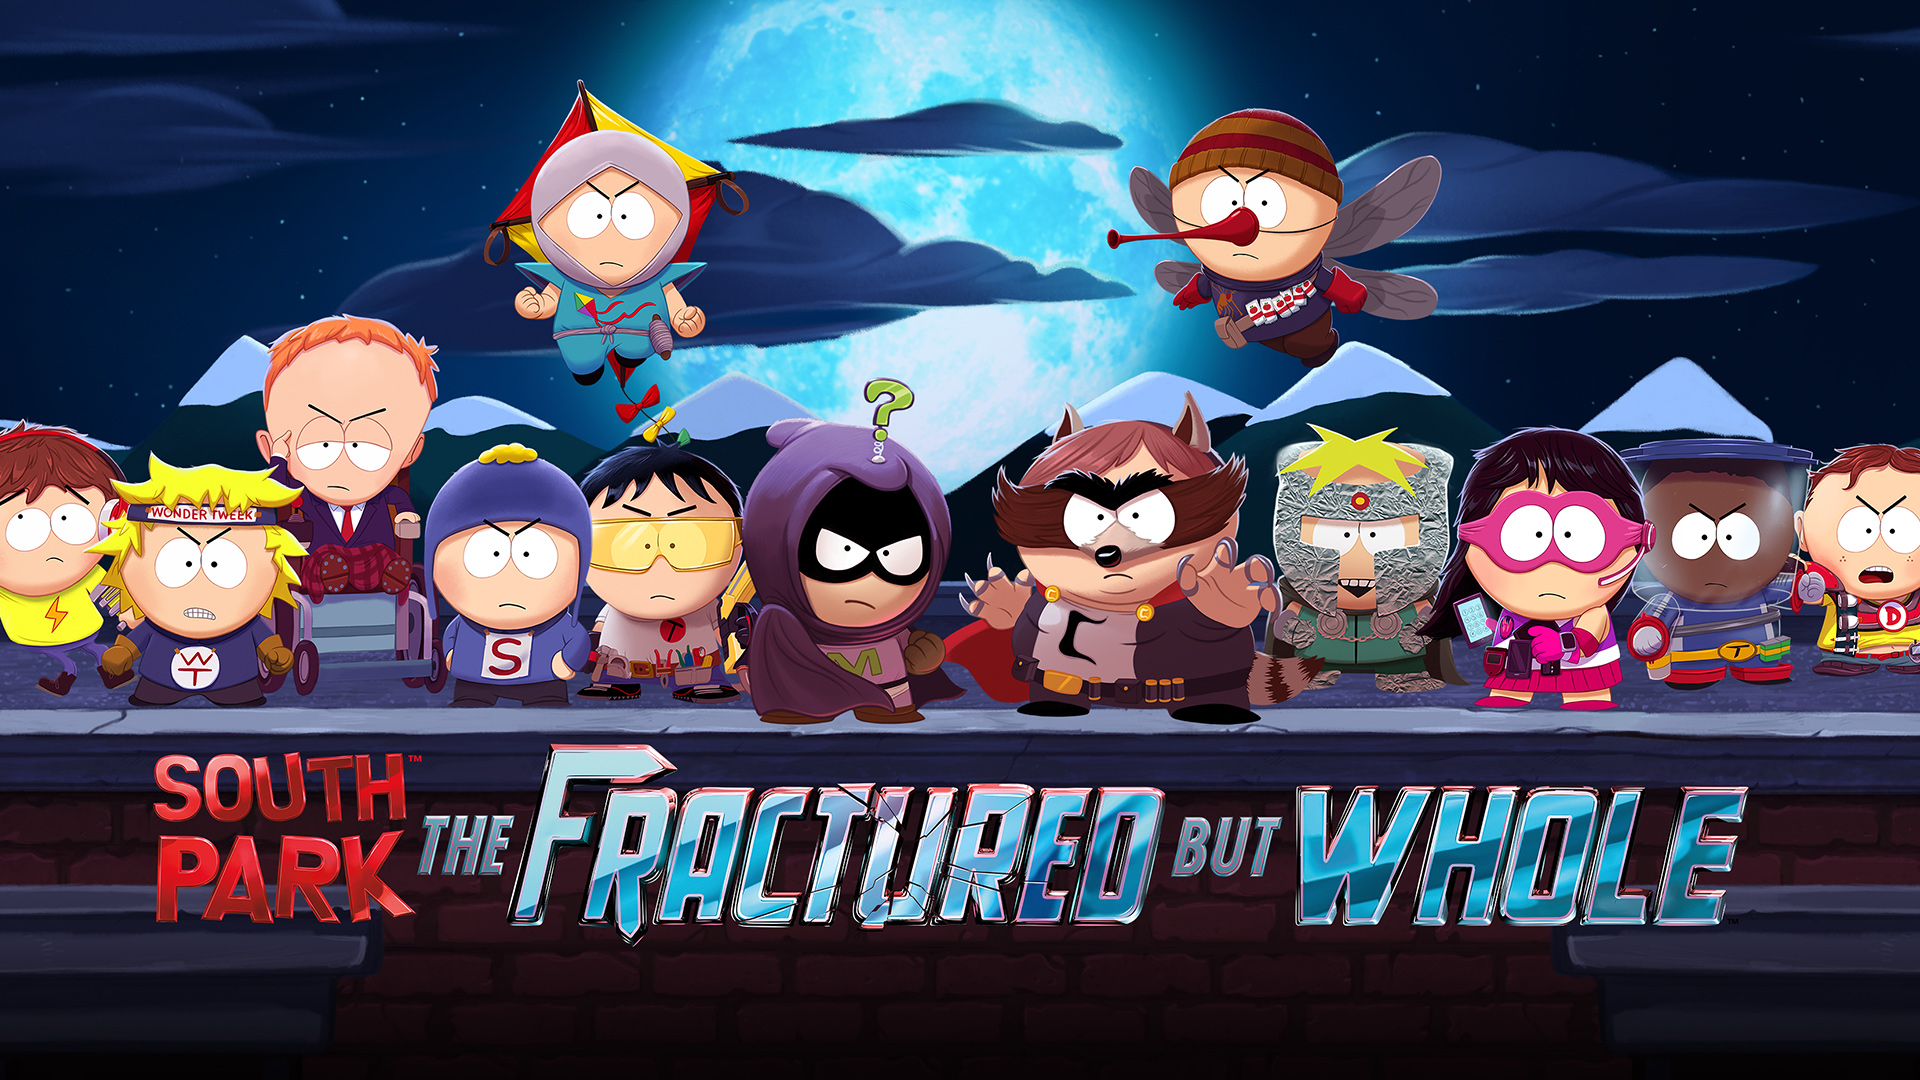 South Park The Fractured But Whole review01